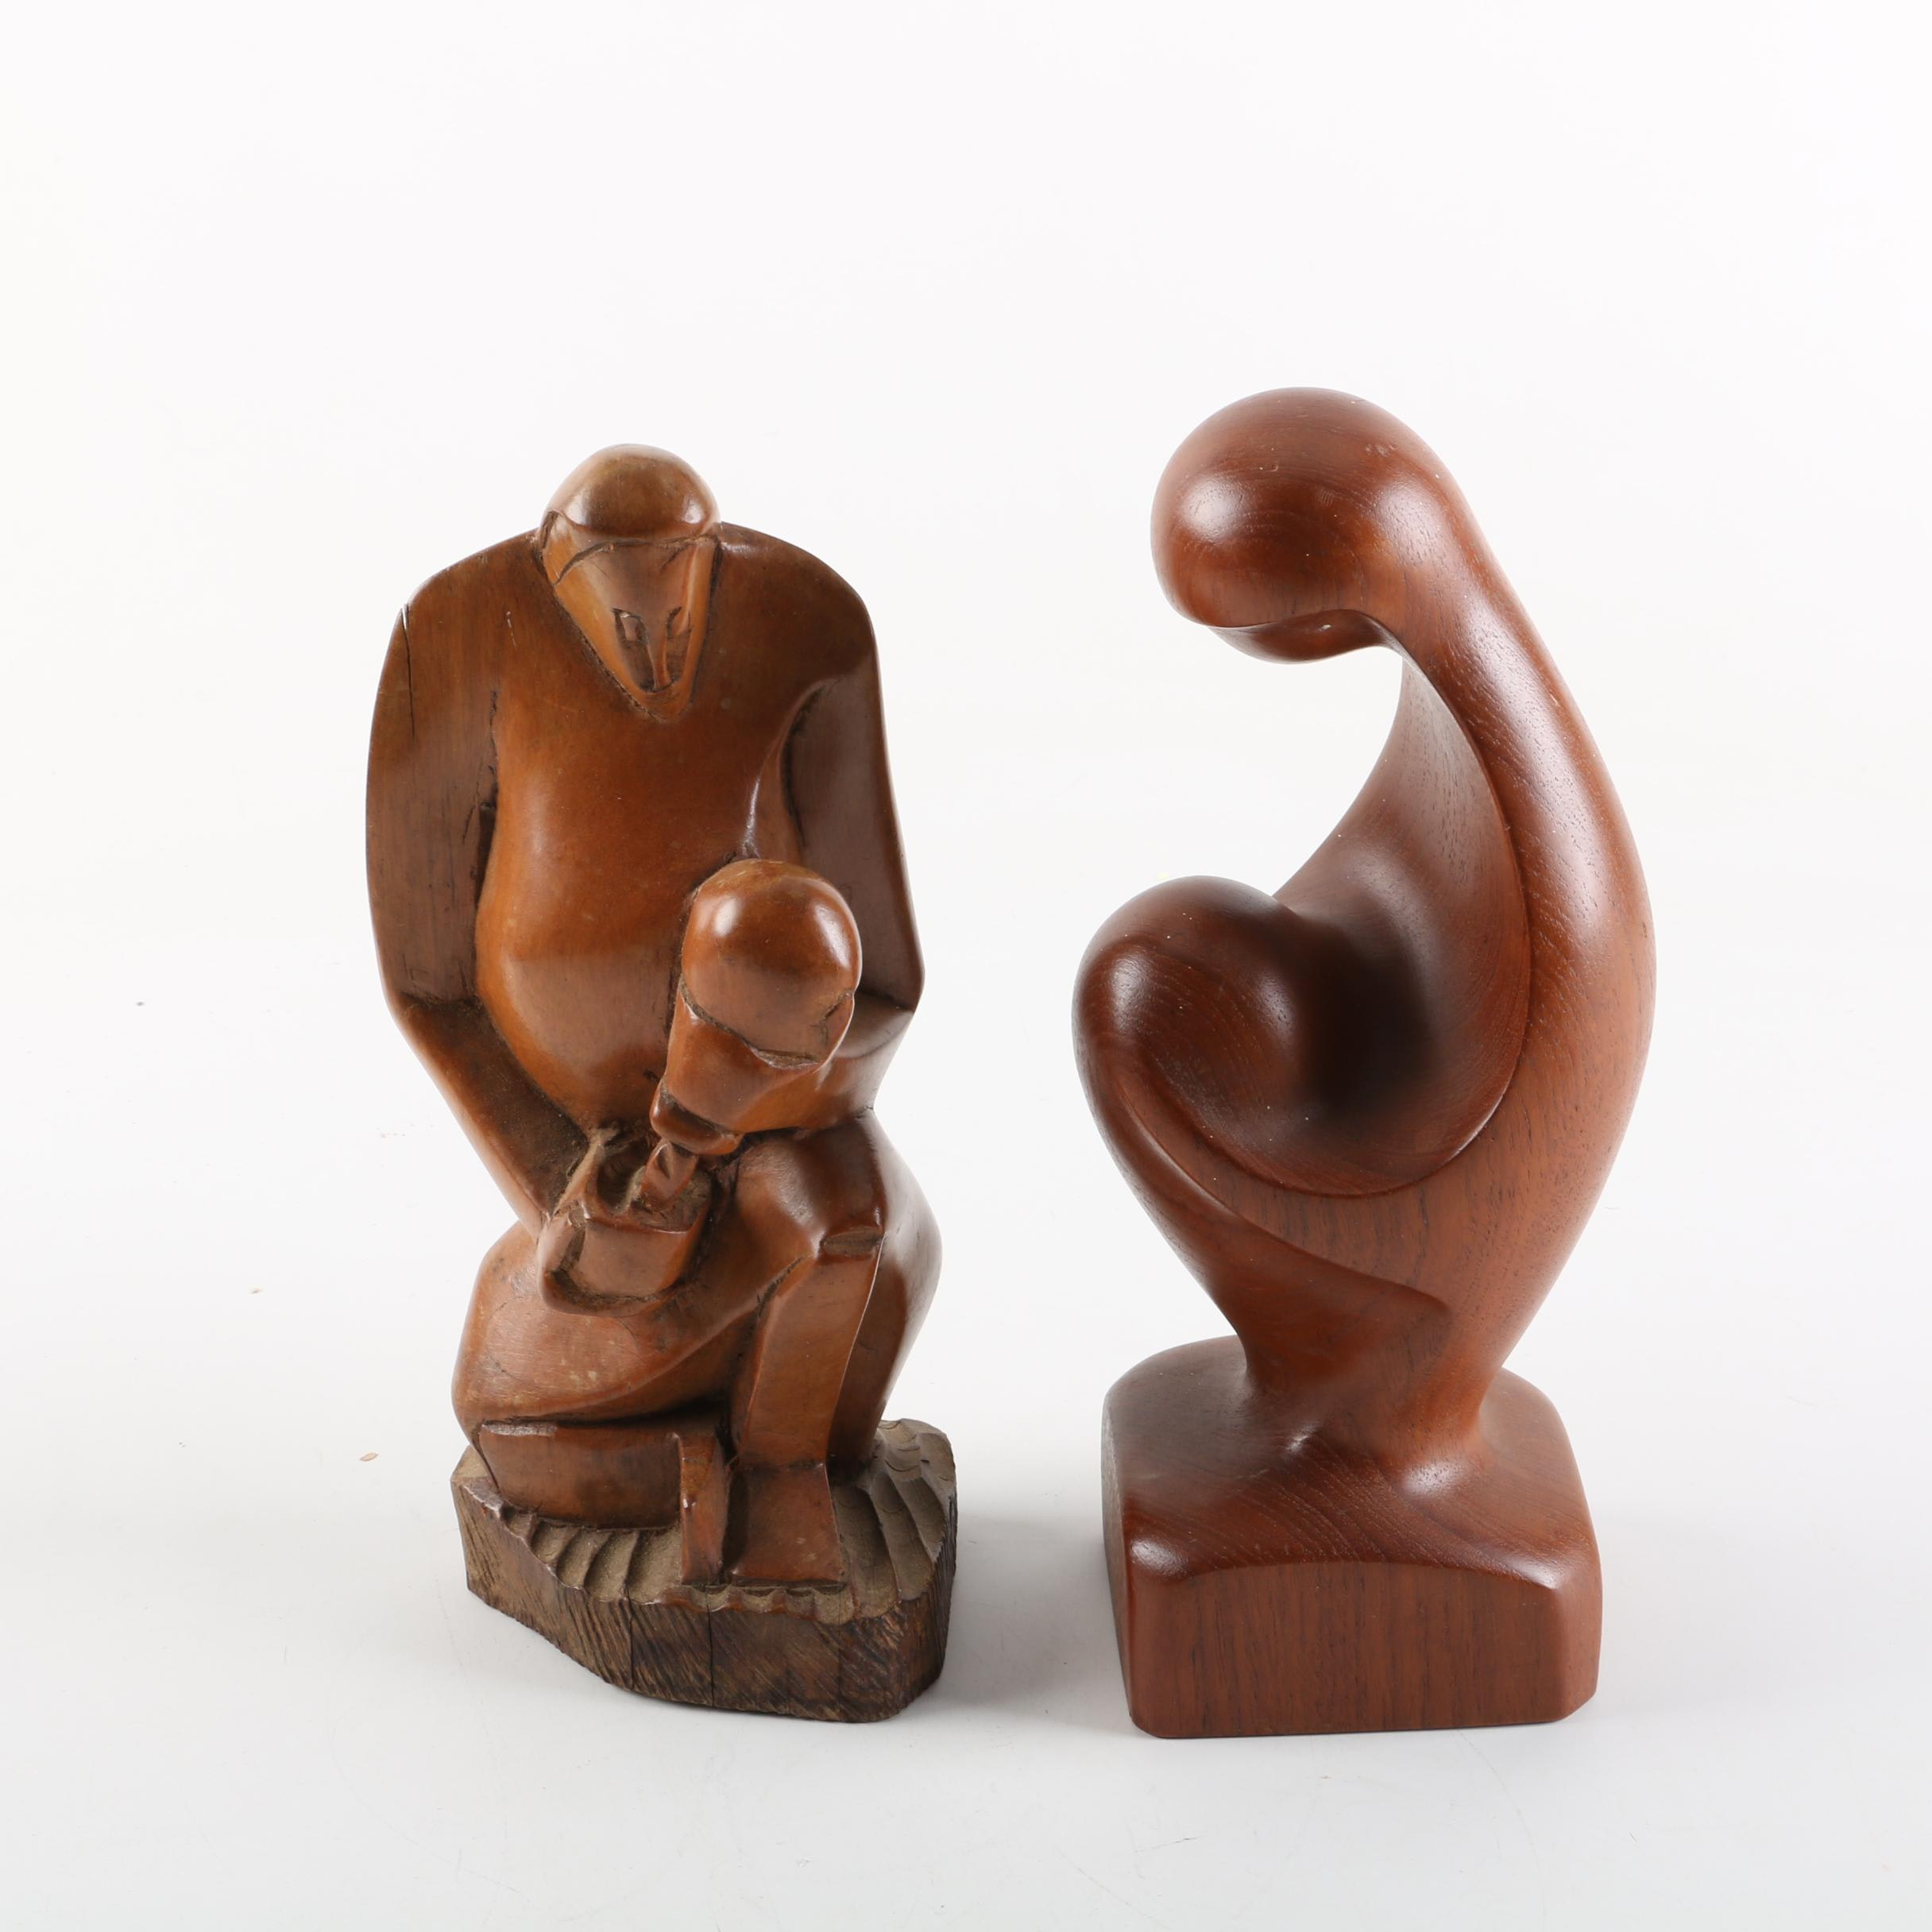 Hand Carved Wooden Figures Including Mother and Child